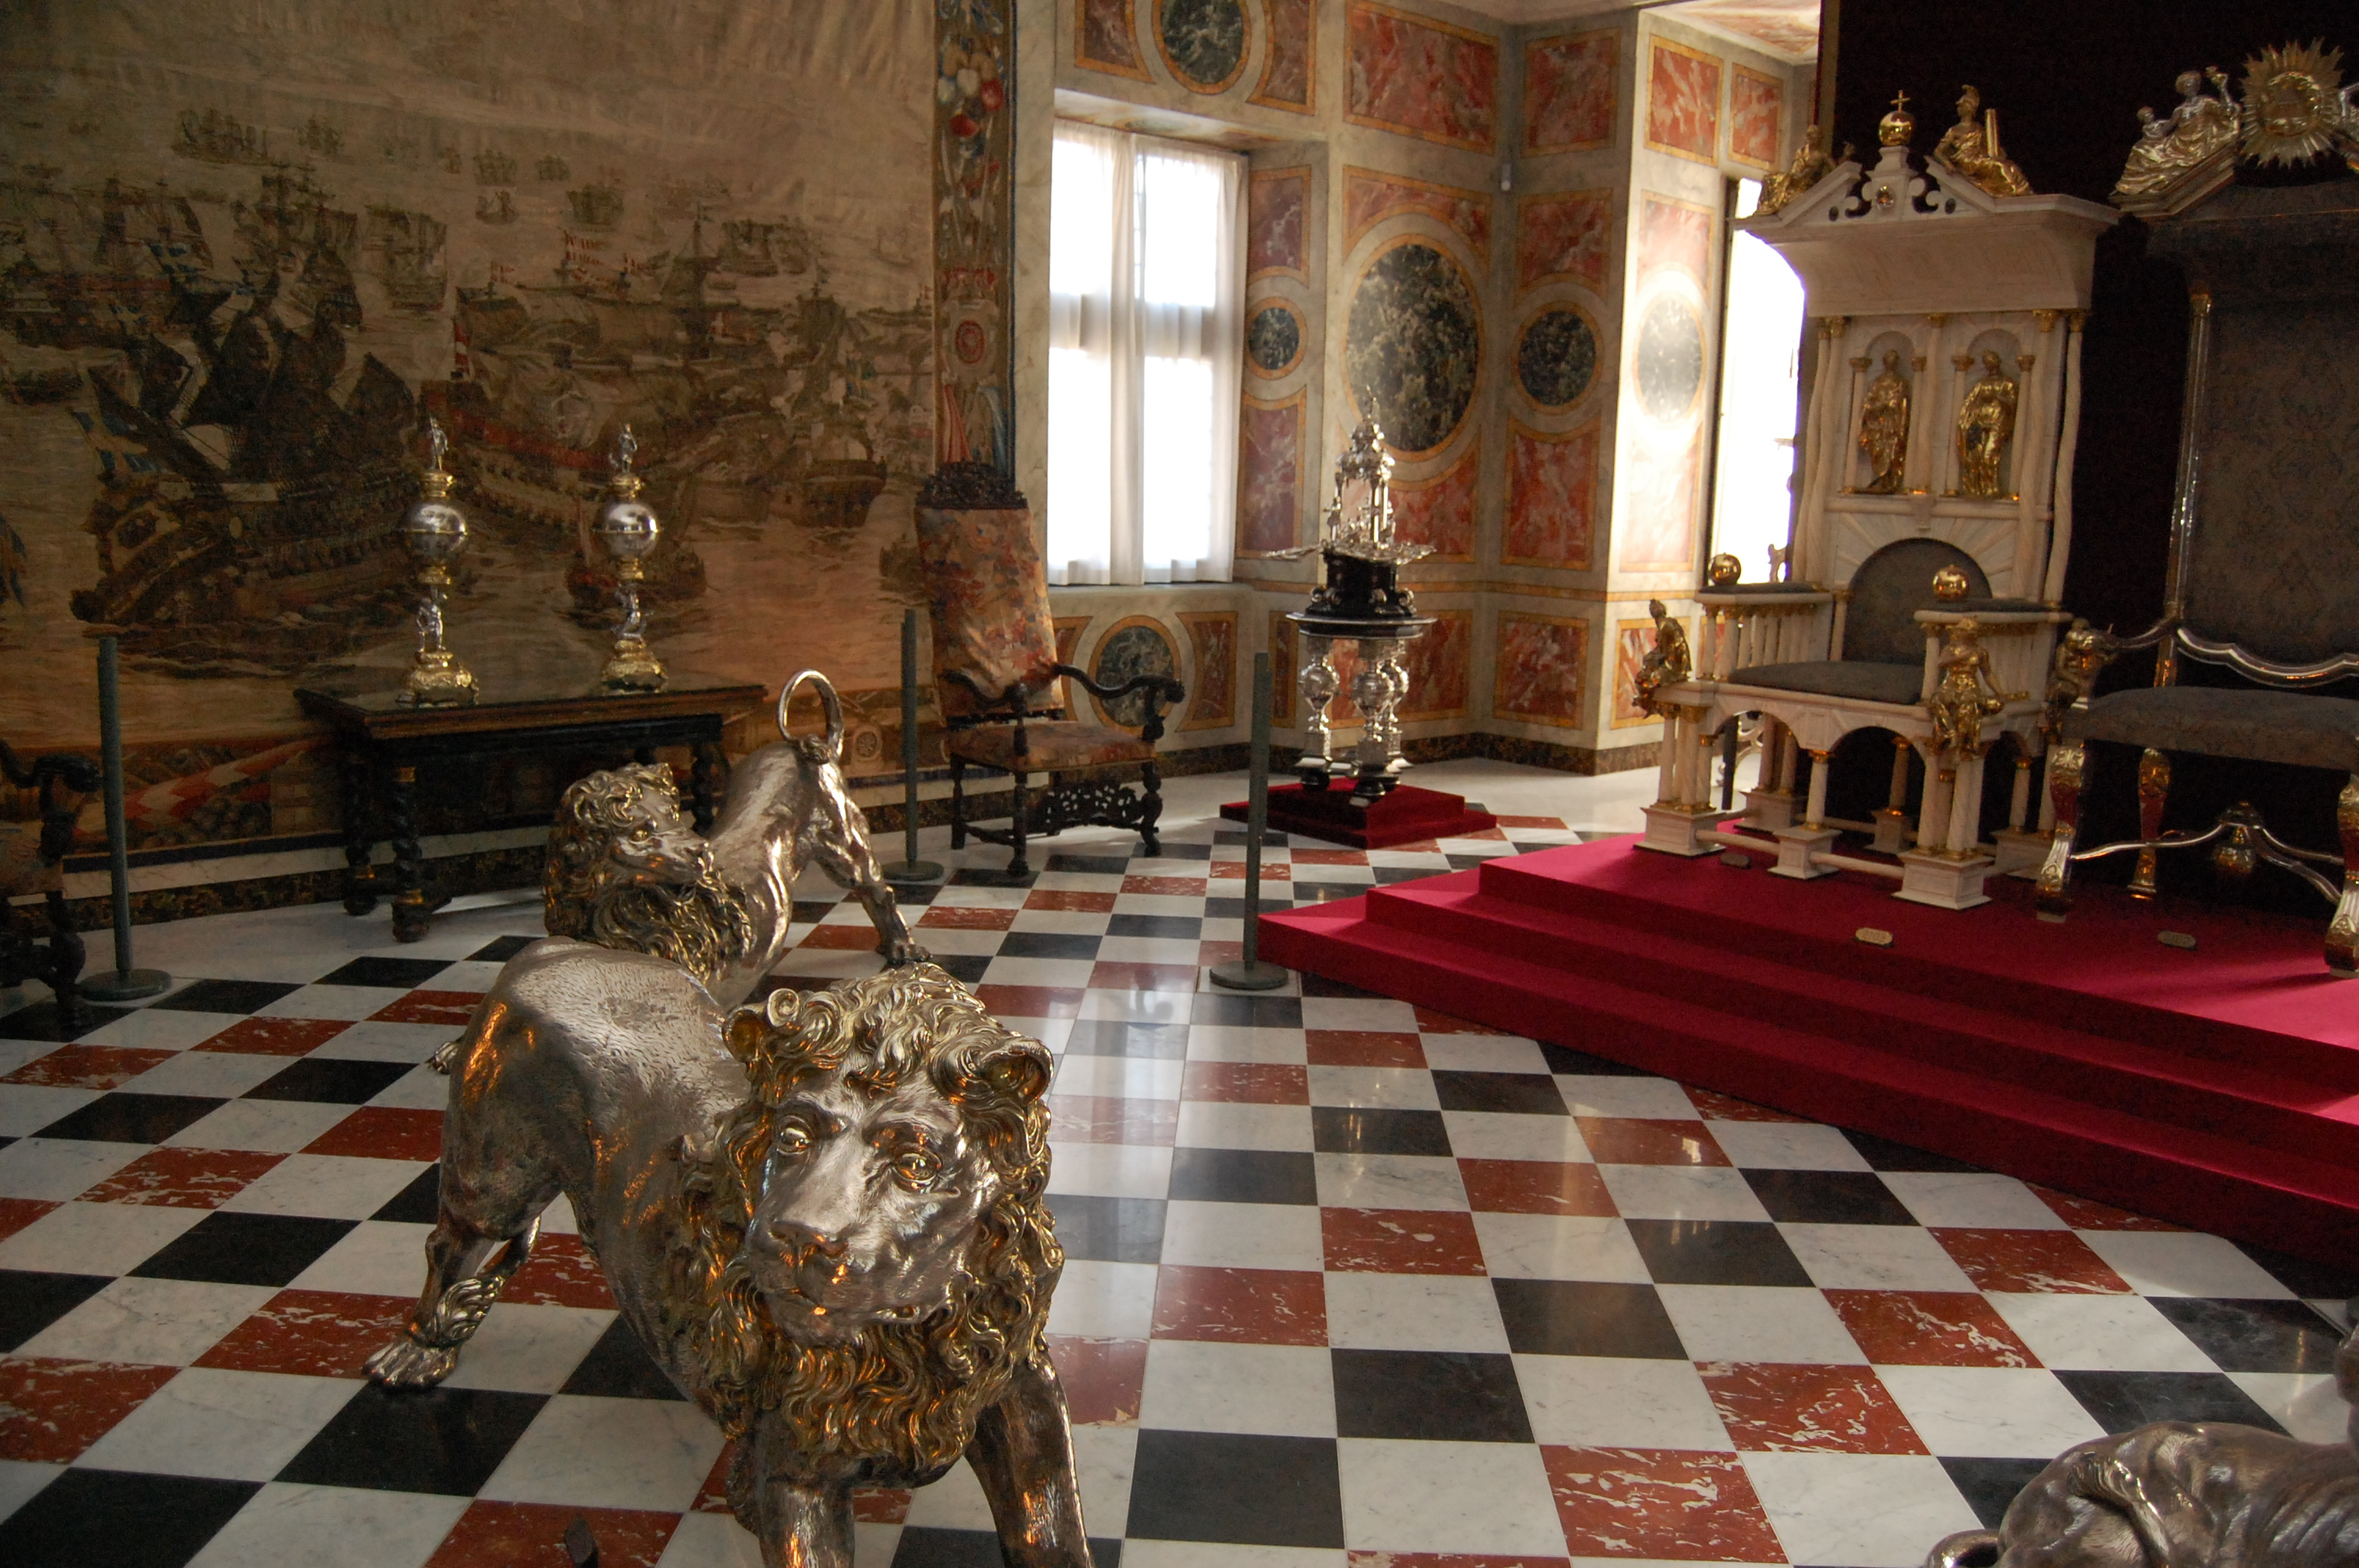 file:rosenborg castle - throne and silver lions1 - wikimedia